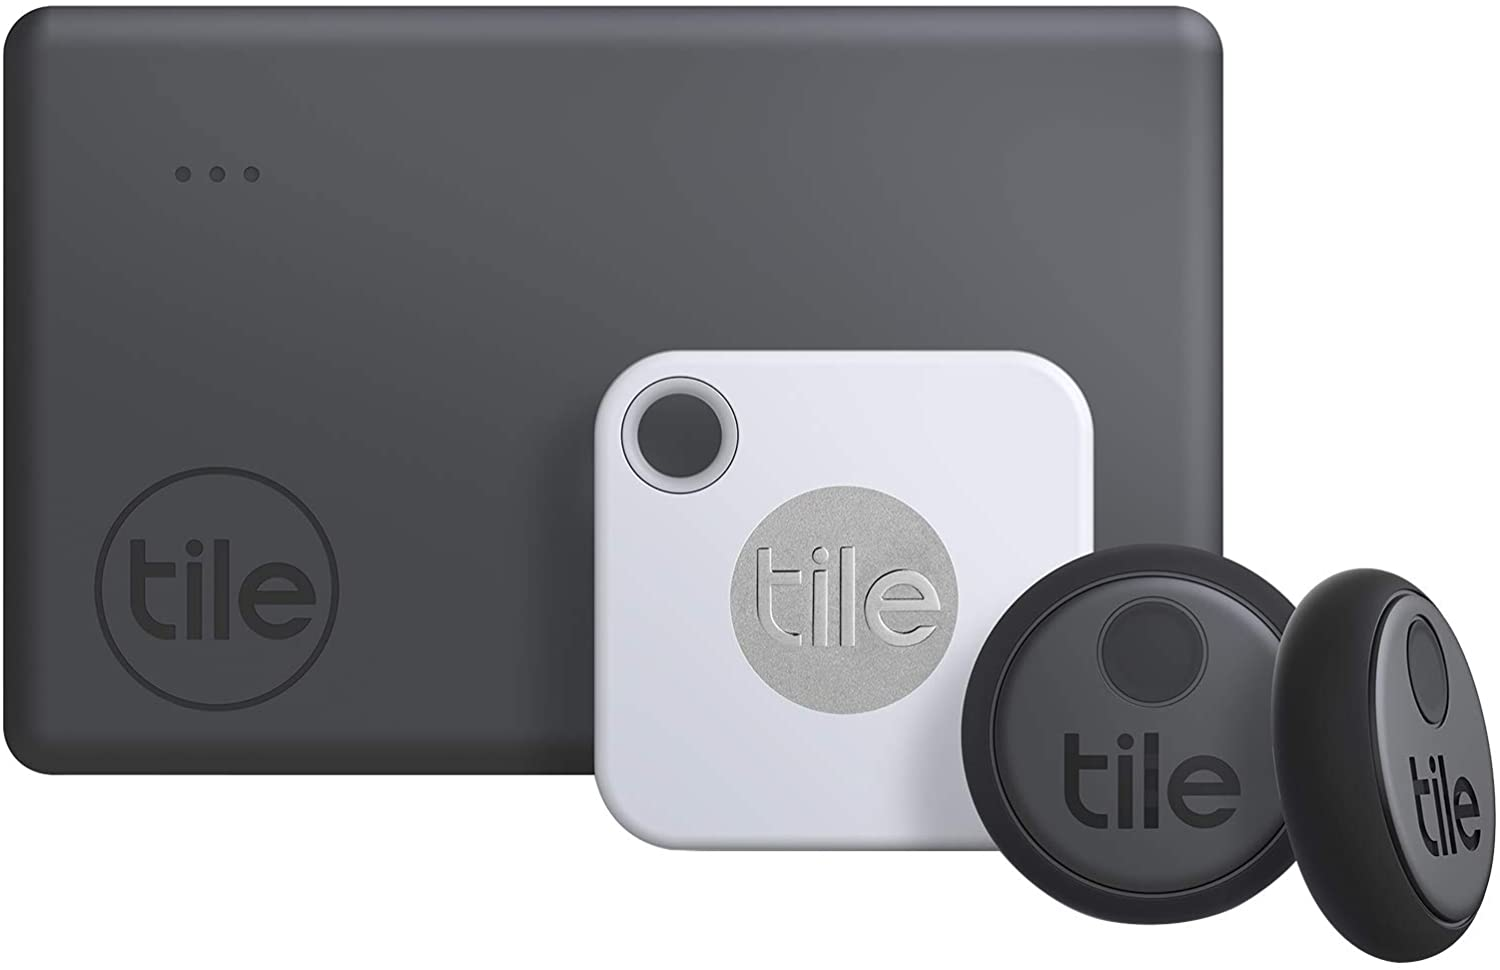 image of tile essentials product for memory aids